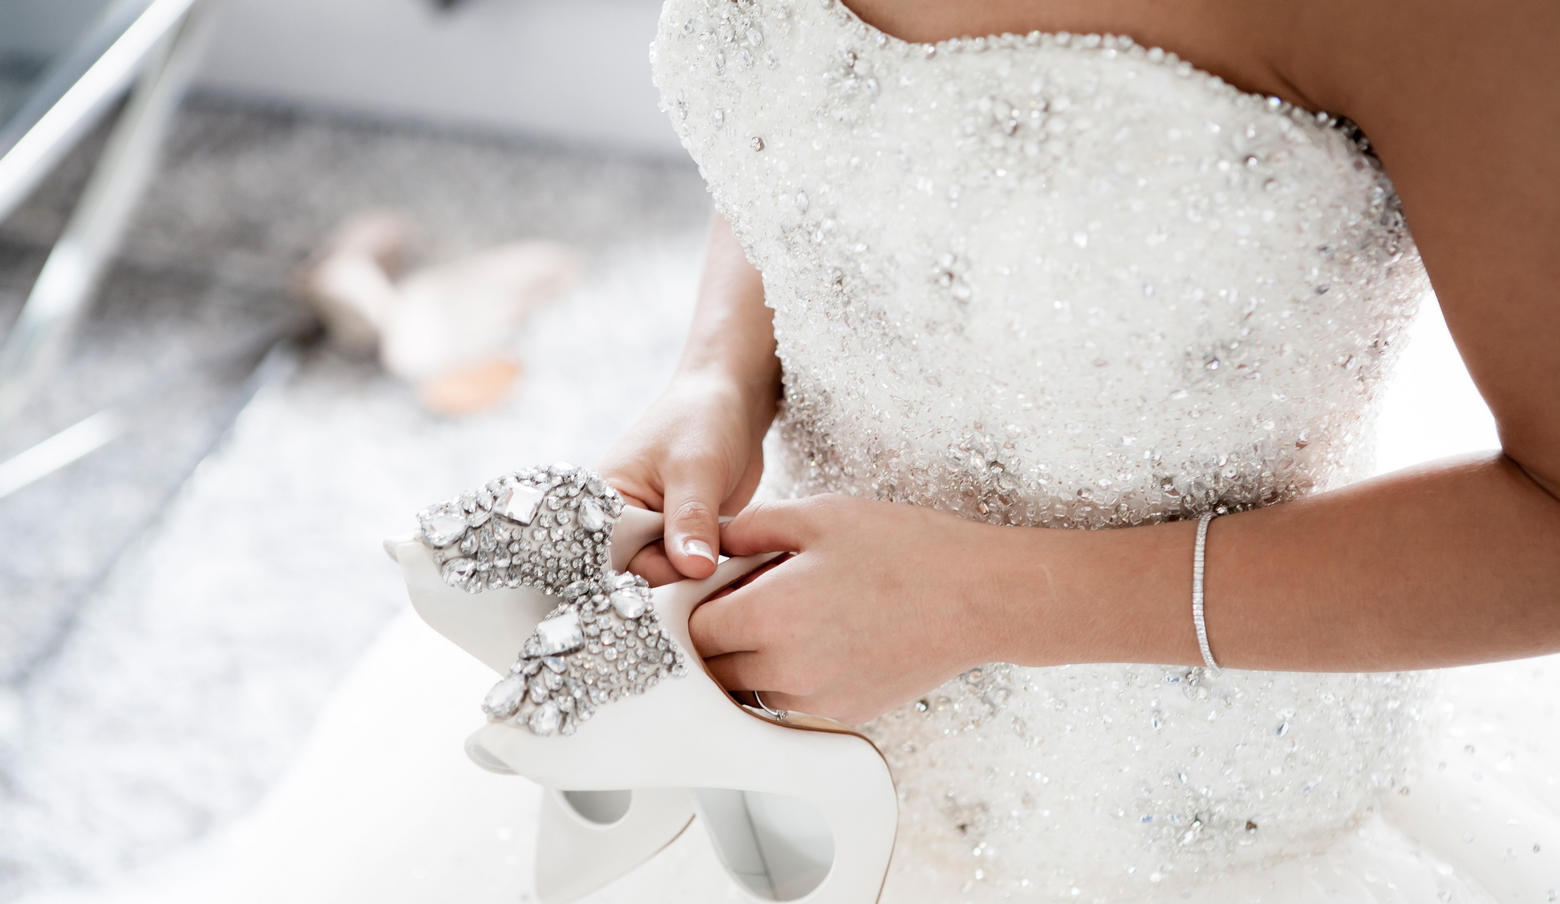 Woman in white wedding gown holding white heels